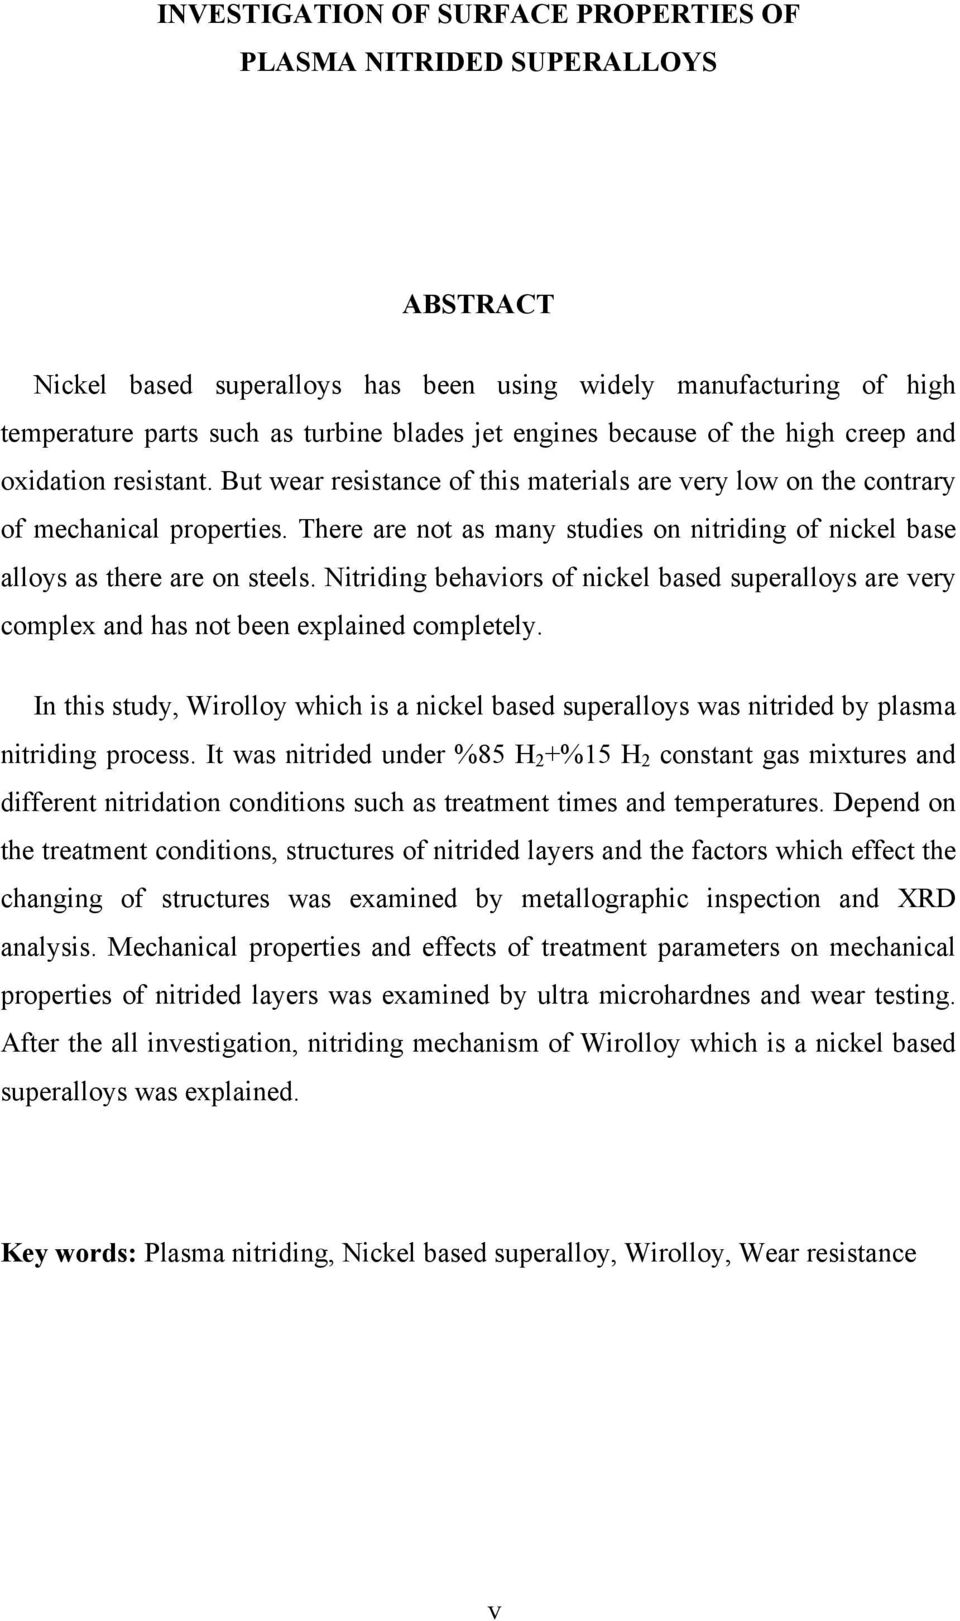 There are not as many studies on nitriding of nickel base alloys as there are on steels. Nitriding behaviors of nickel based superalloys are very complex and has not been explained completely.